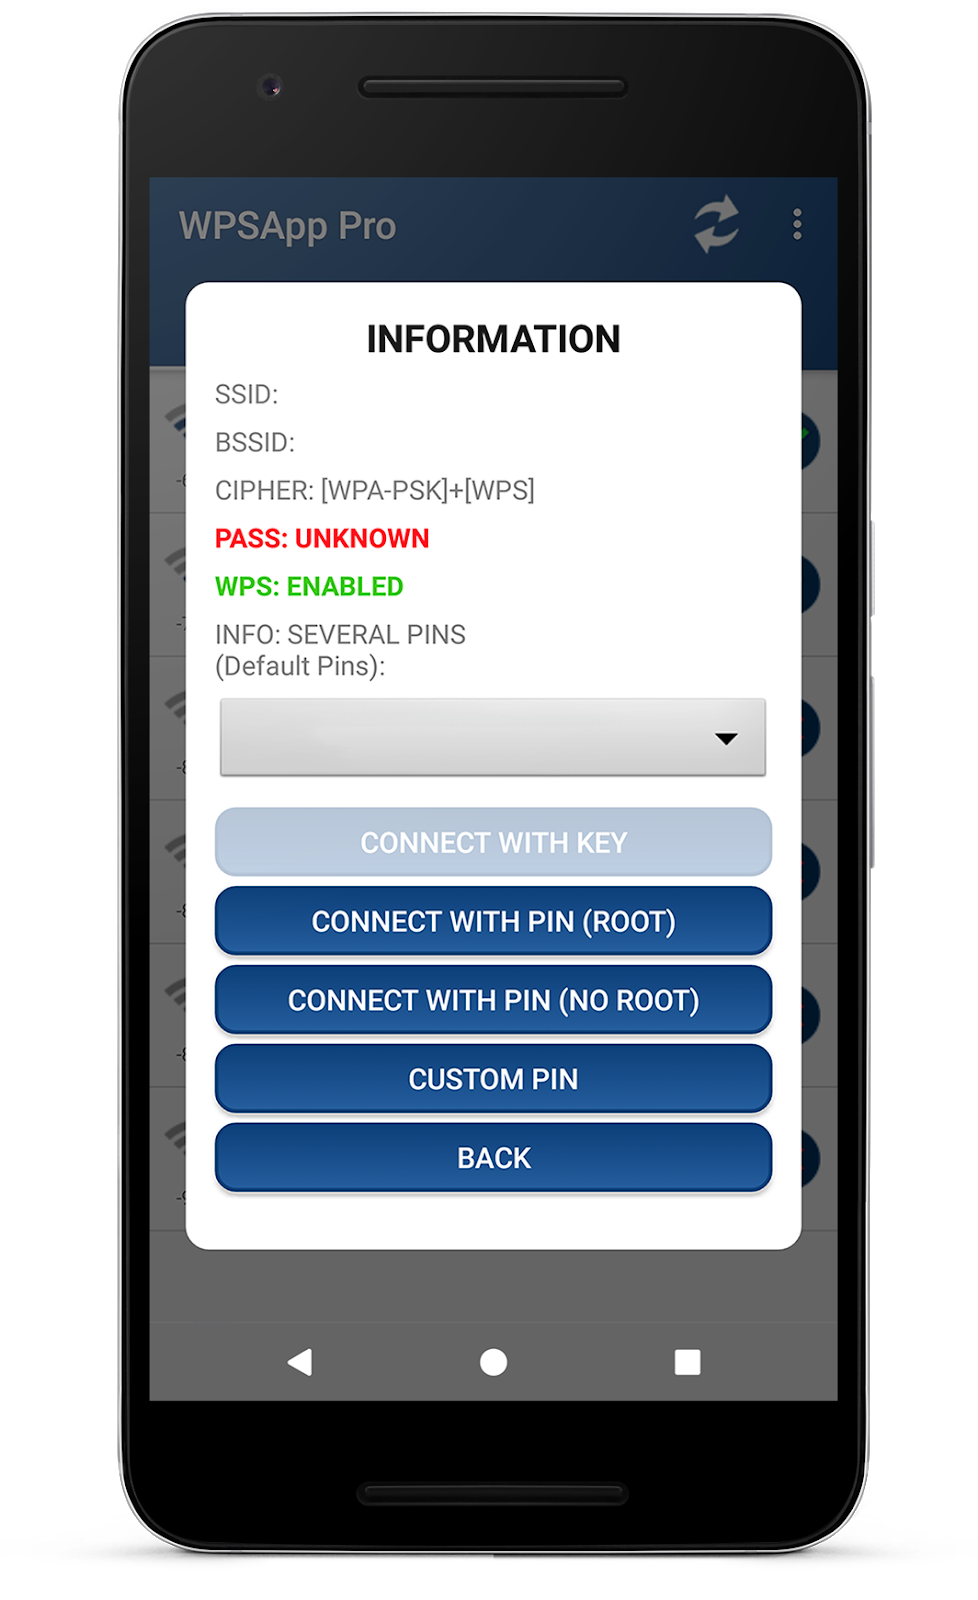 Download WPSApp Pro v1 6 13 [Patched] - Apk For Free - Free Download